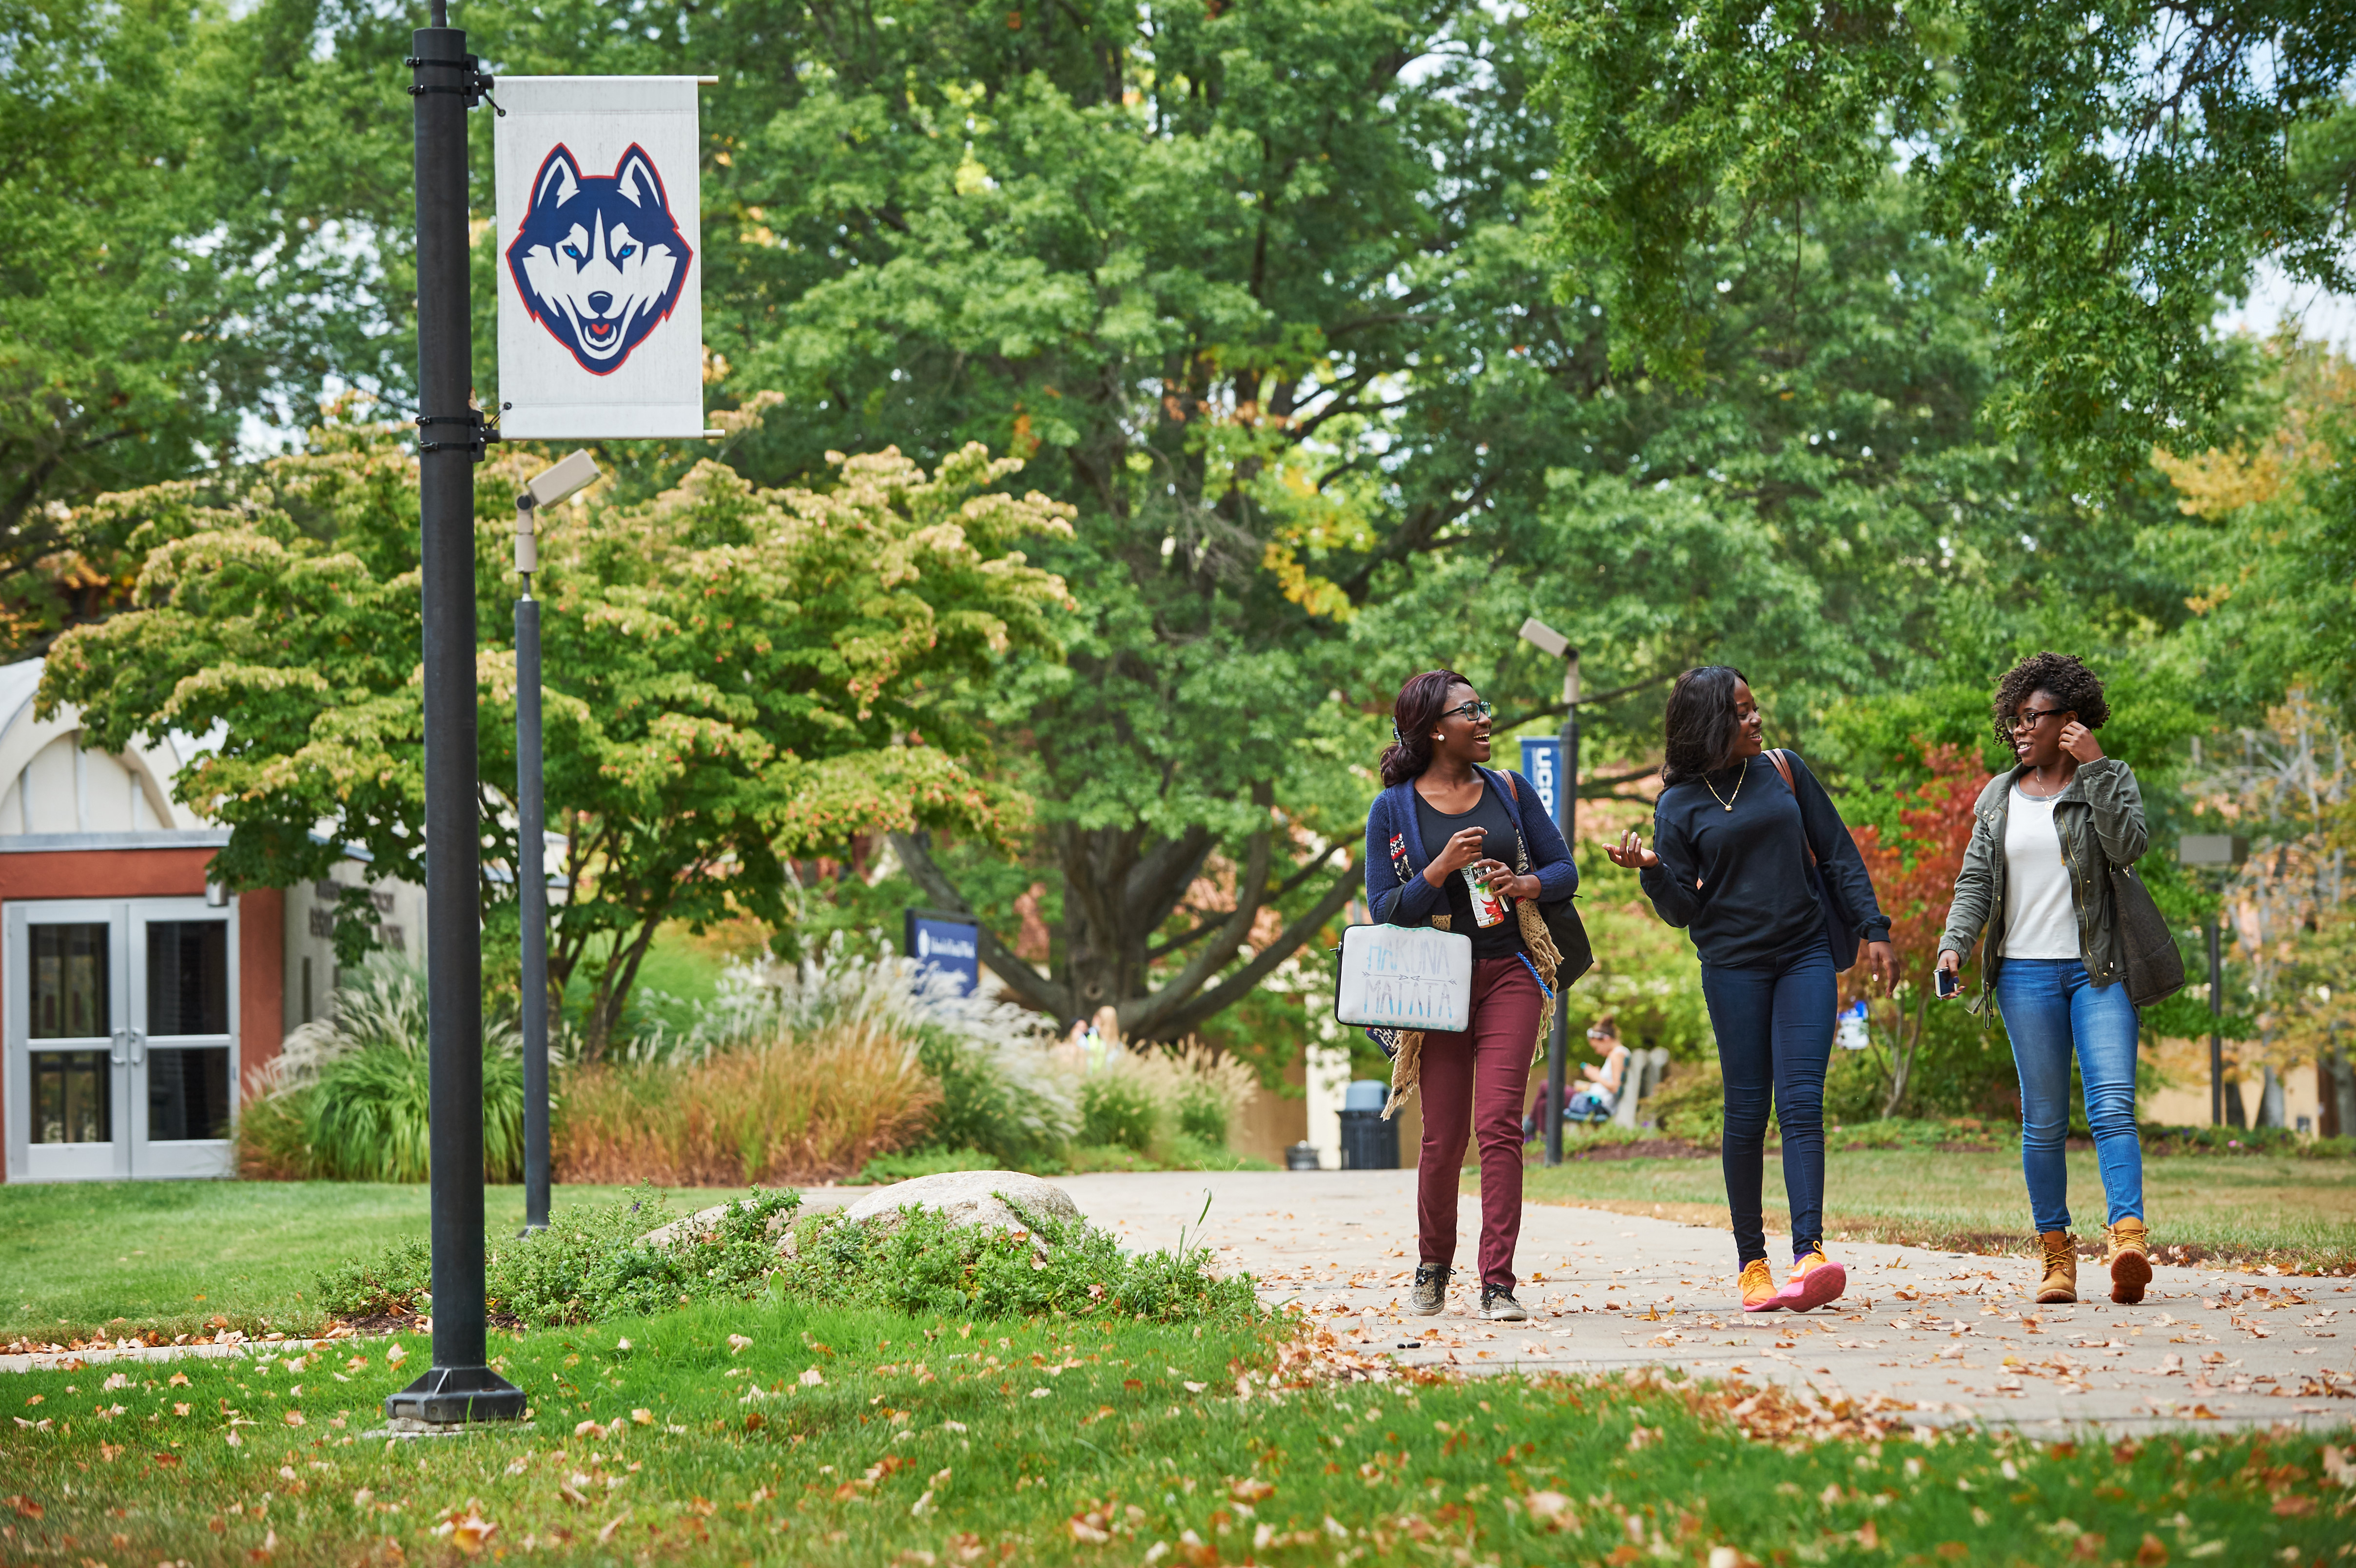 Students walk outdoors near banners on the Hartford campus. (Peter Morenus/UConn Photo)